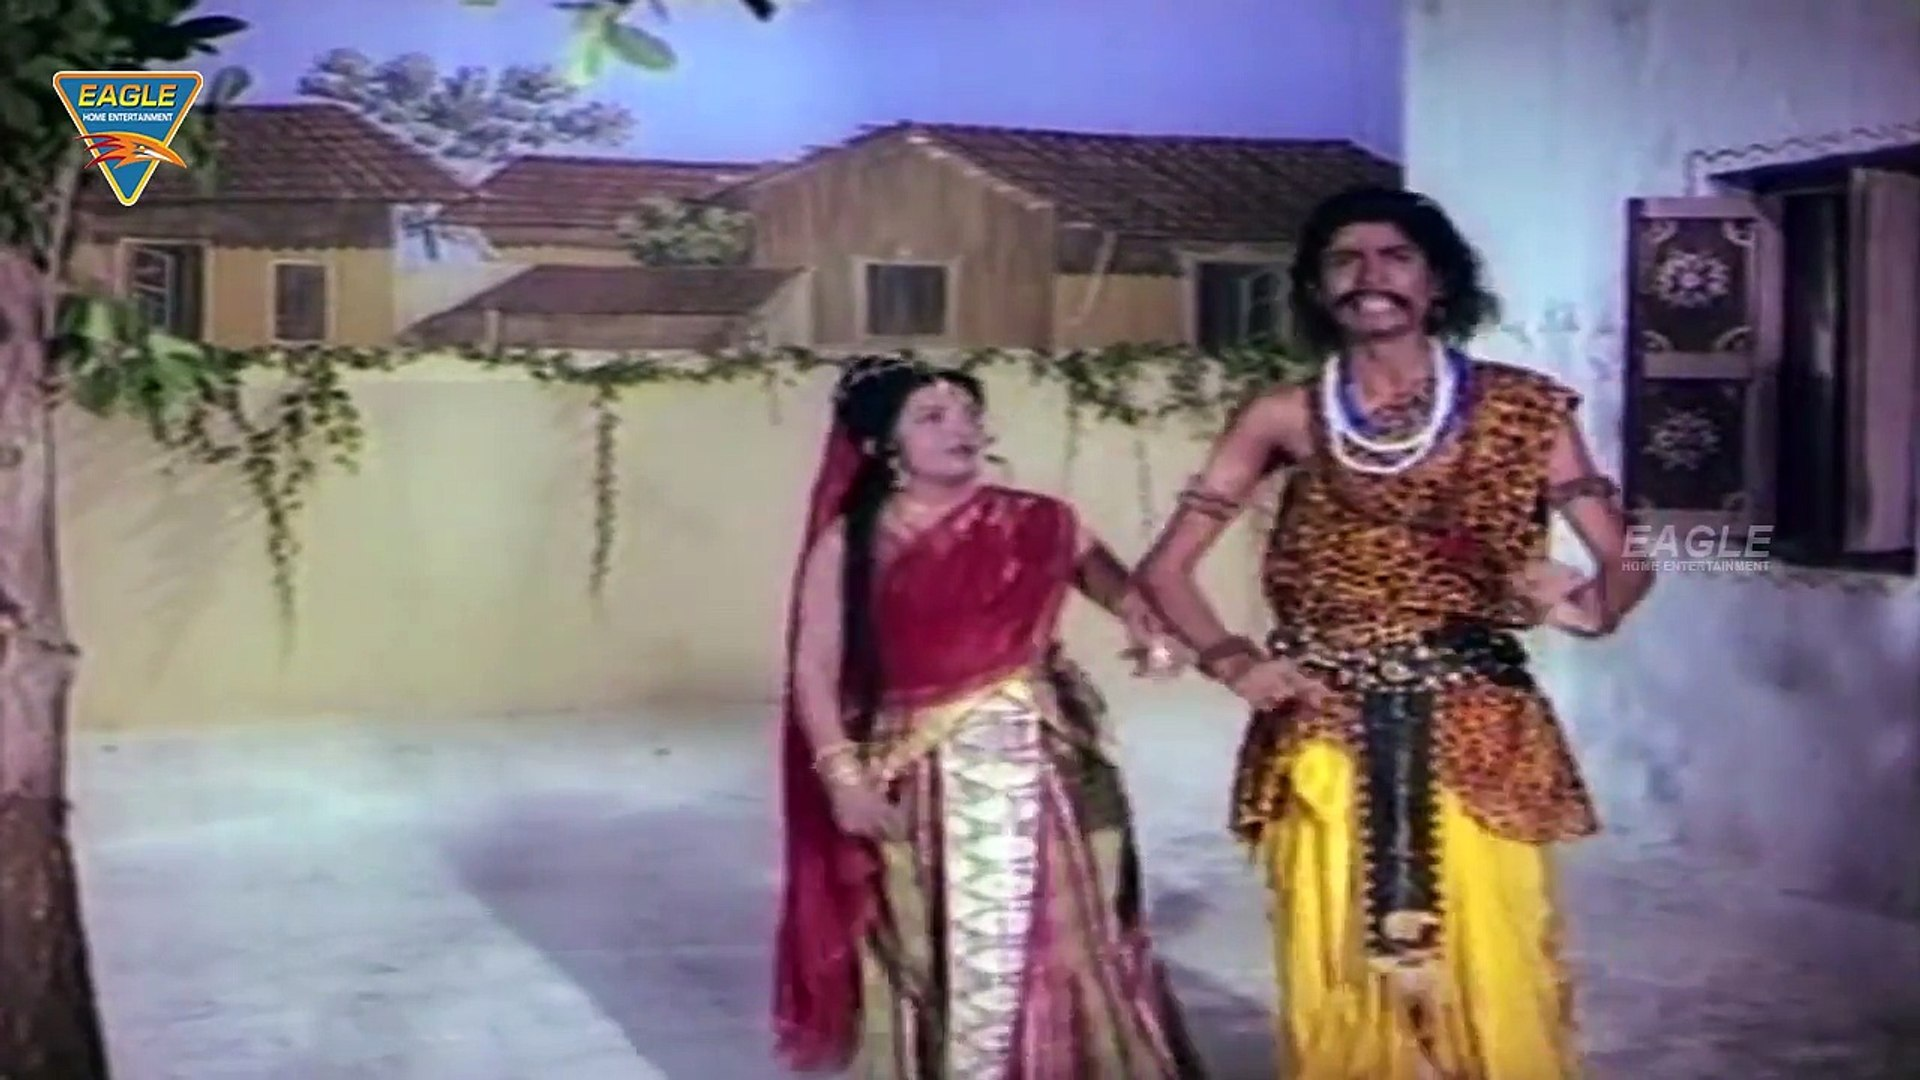 Shiv Parvathi Hindi Movie Ratnamala Funny Scene Aravind Trivedi Eagle Hindi Movies